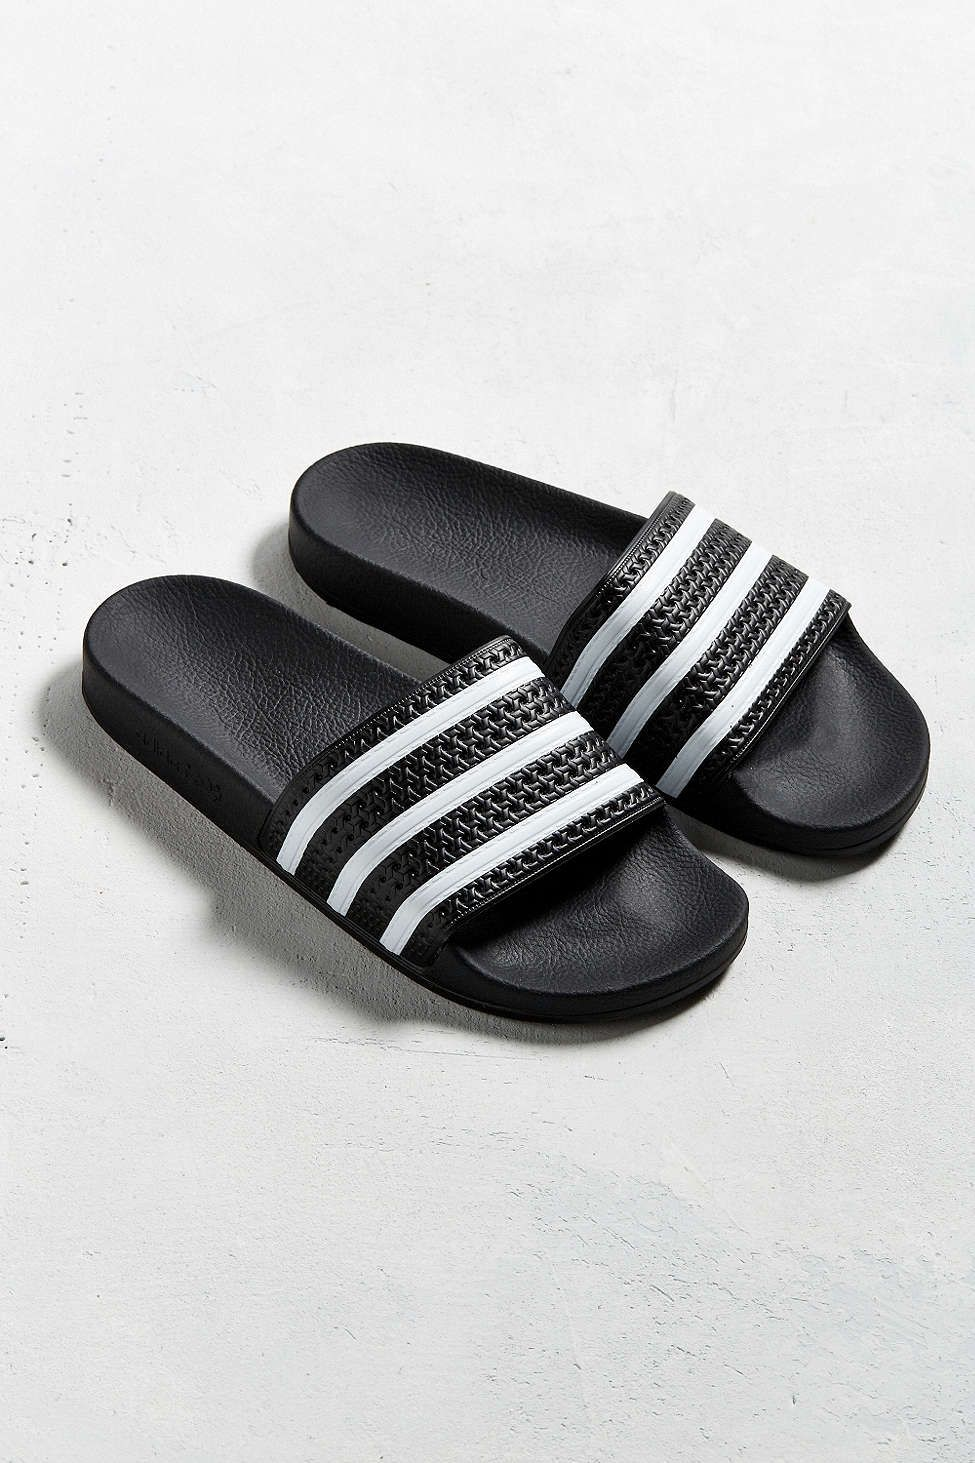 7c6497df8ccb0 adidas Originals Adilette Pool Slide Sandal - would be perfect to slip on  to go take out the trash or run errands!